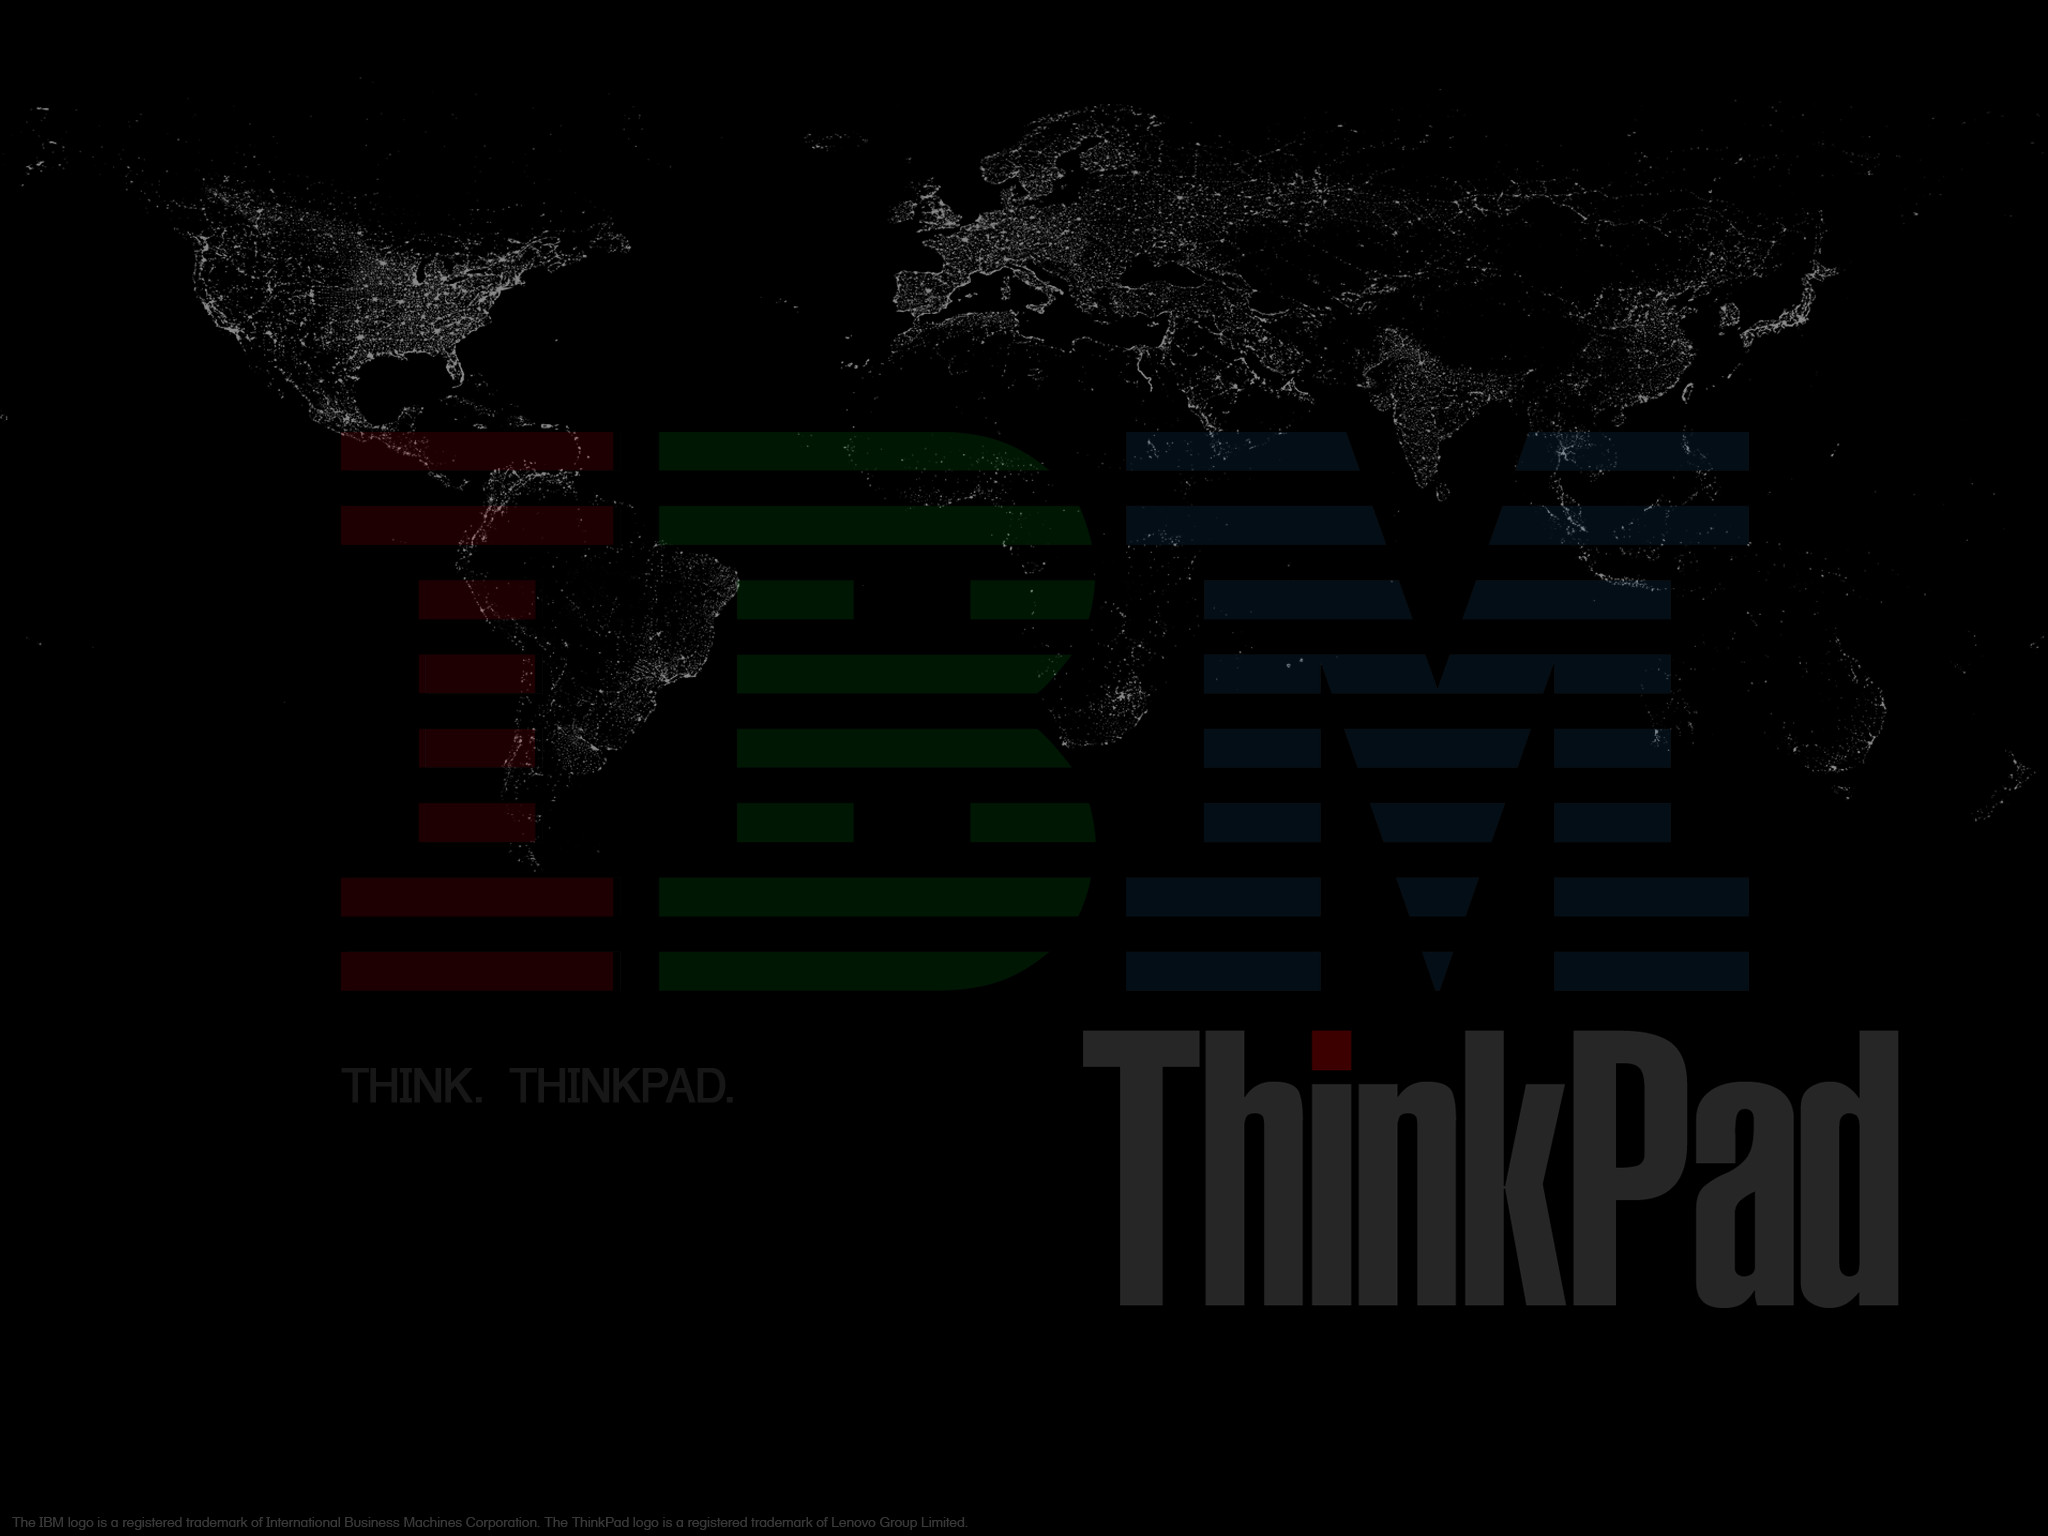 IBM Wallpaper Thinkpad 64 Images